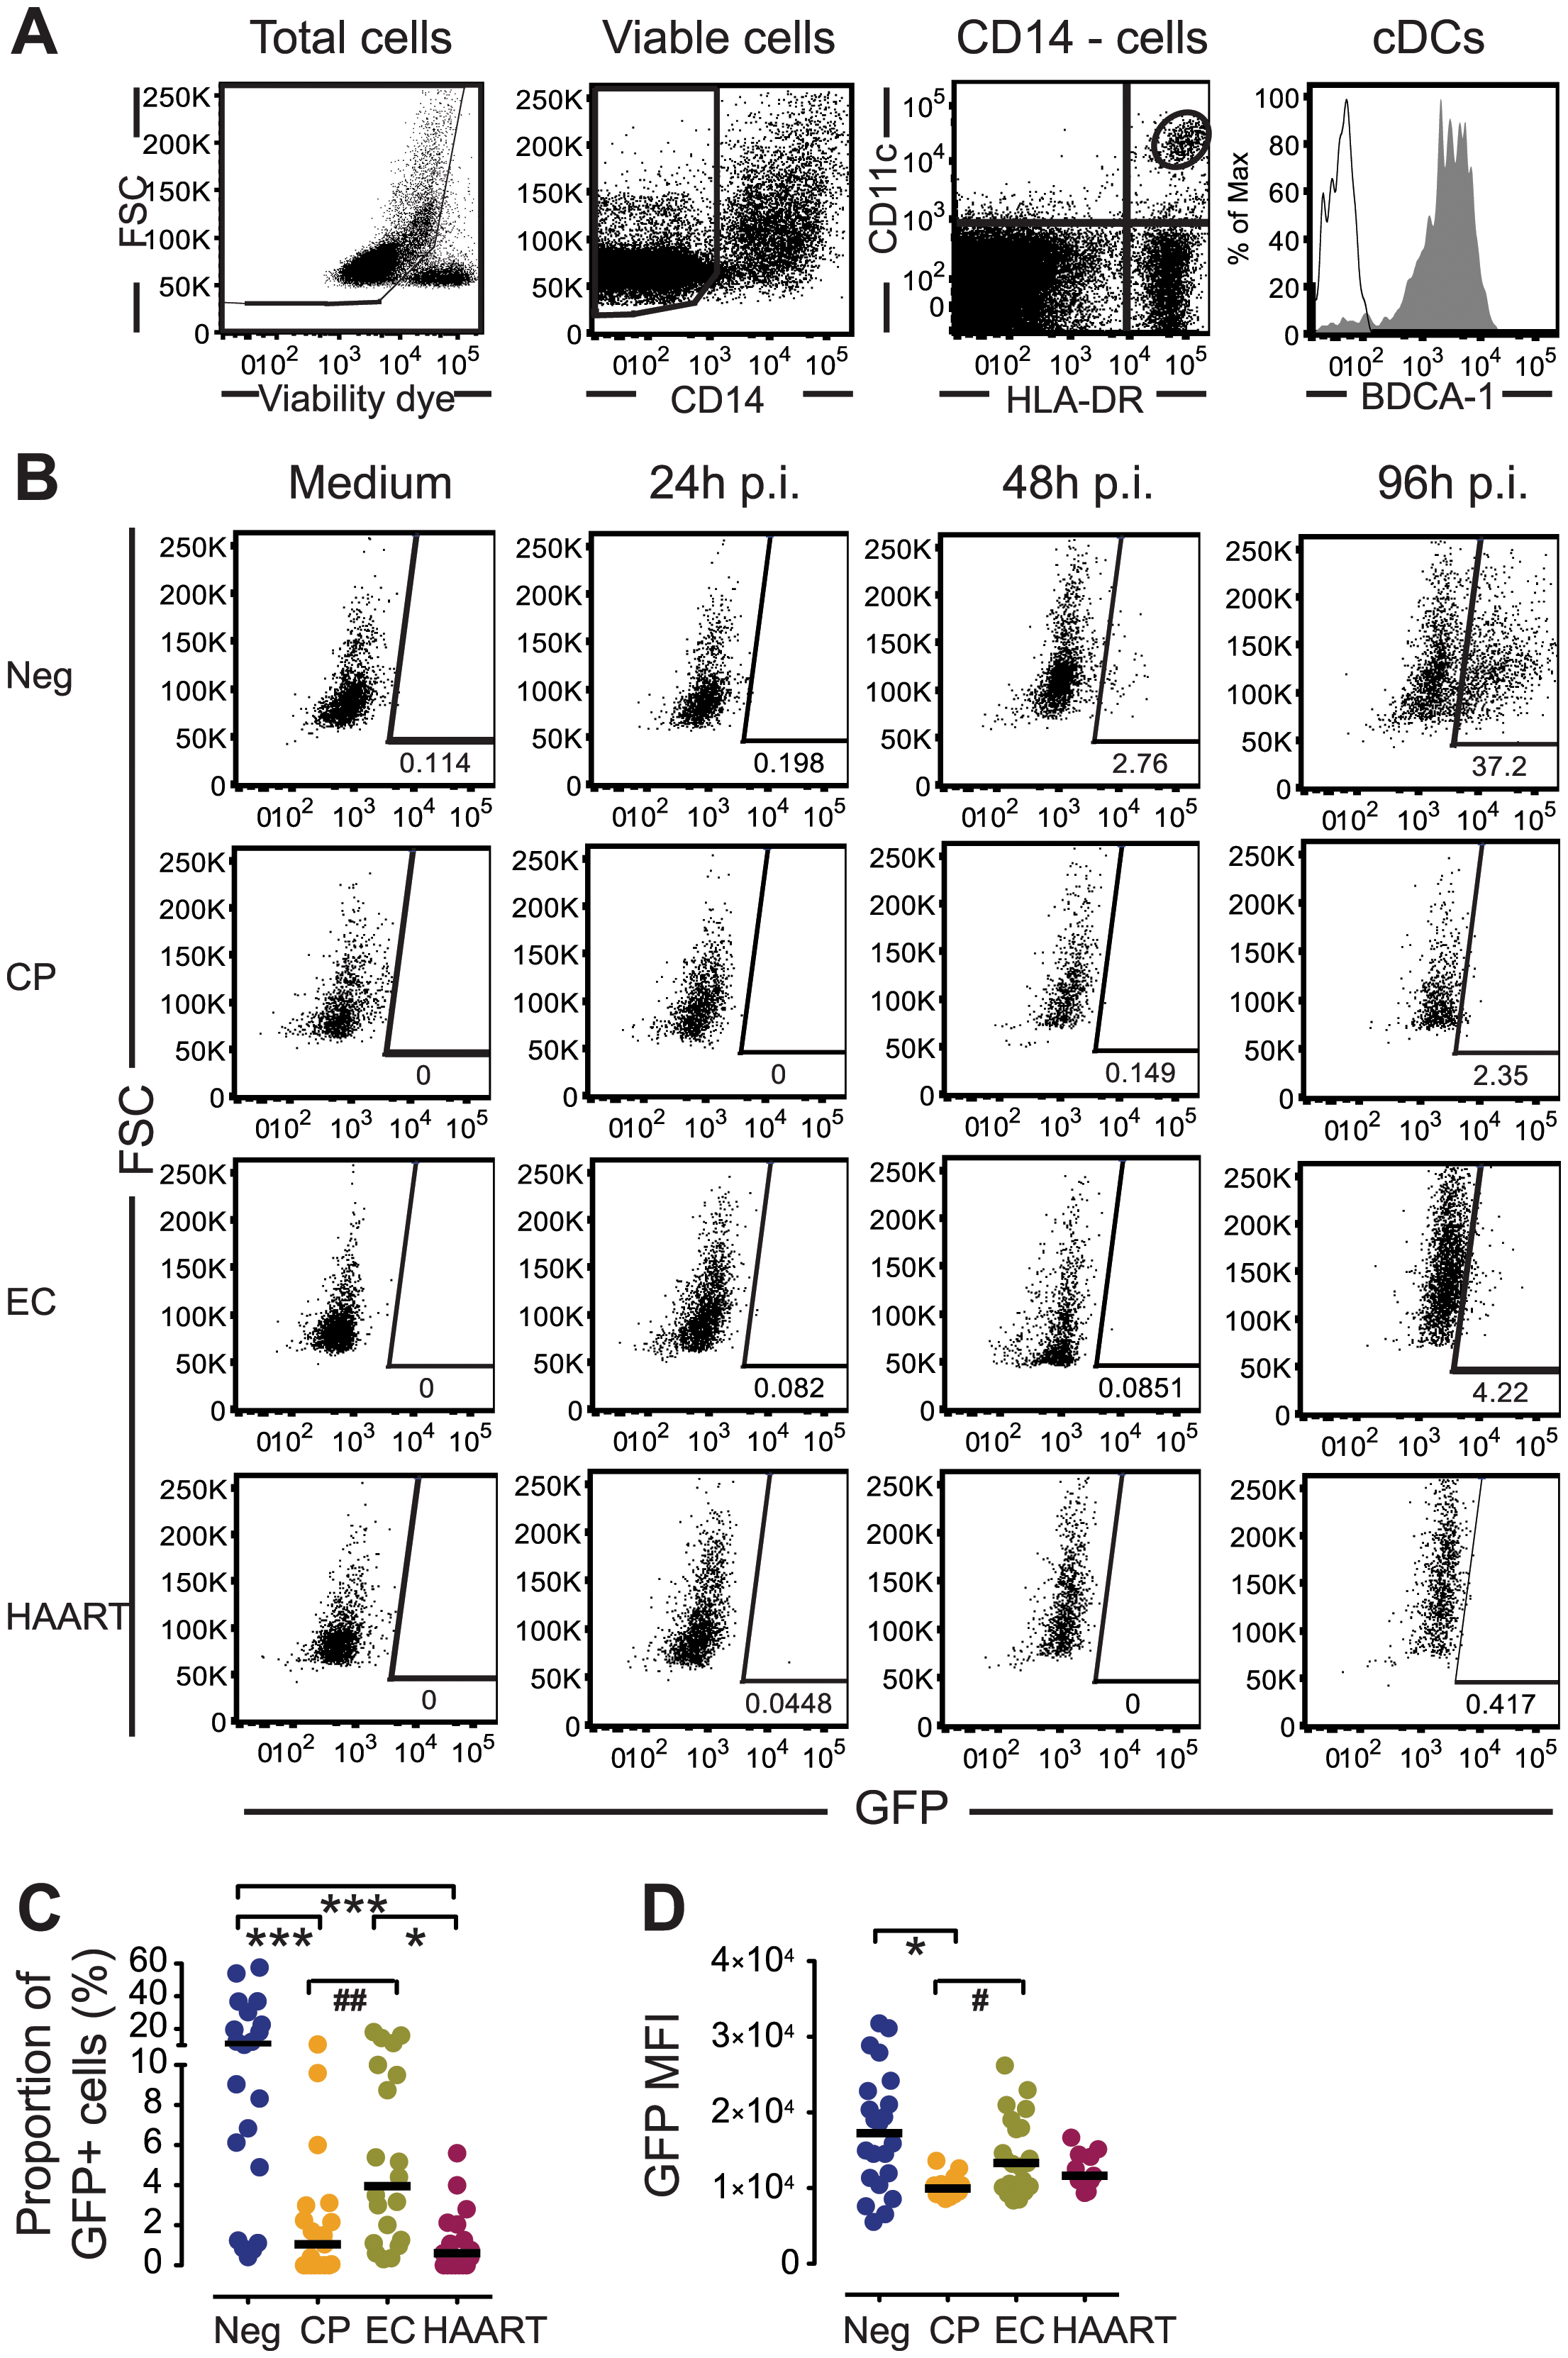 Susceptibility of primary cDCs to <i>ex-vivo</i> infection with HIV-1.